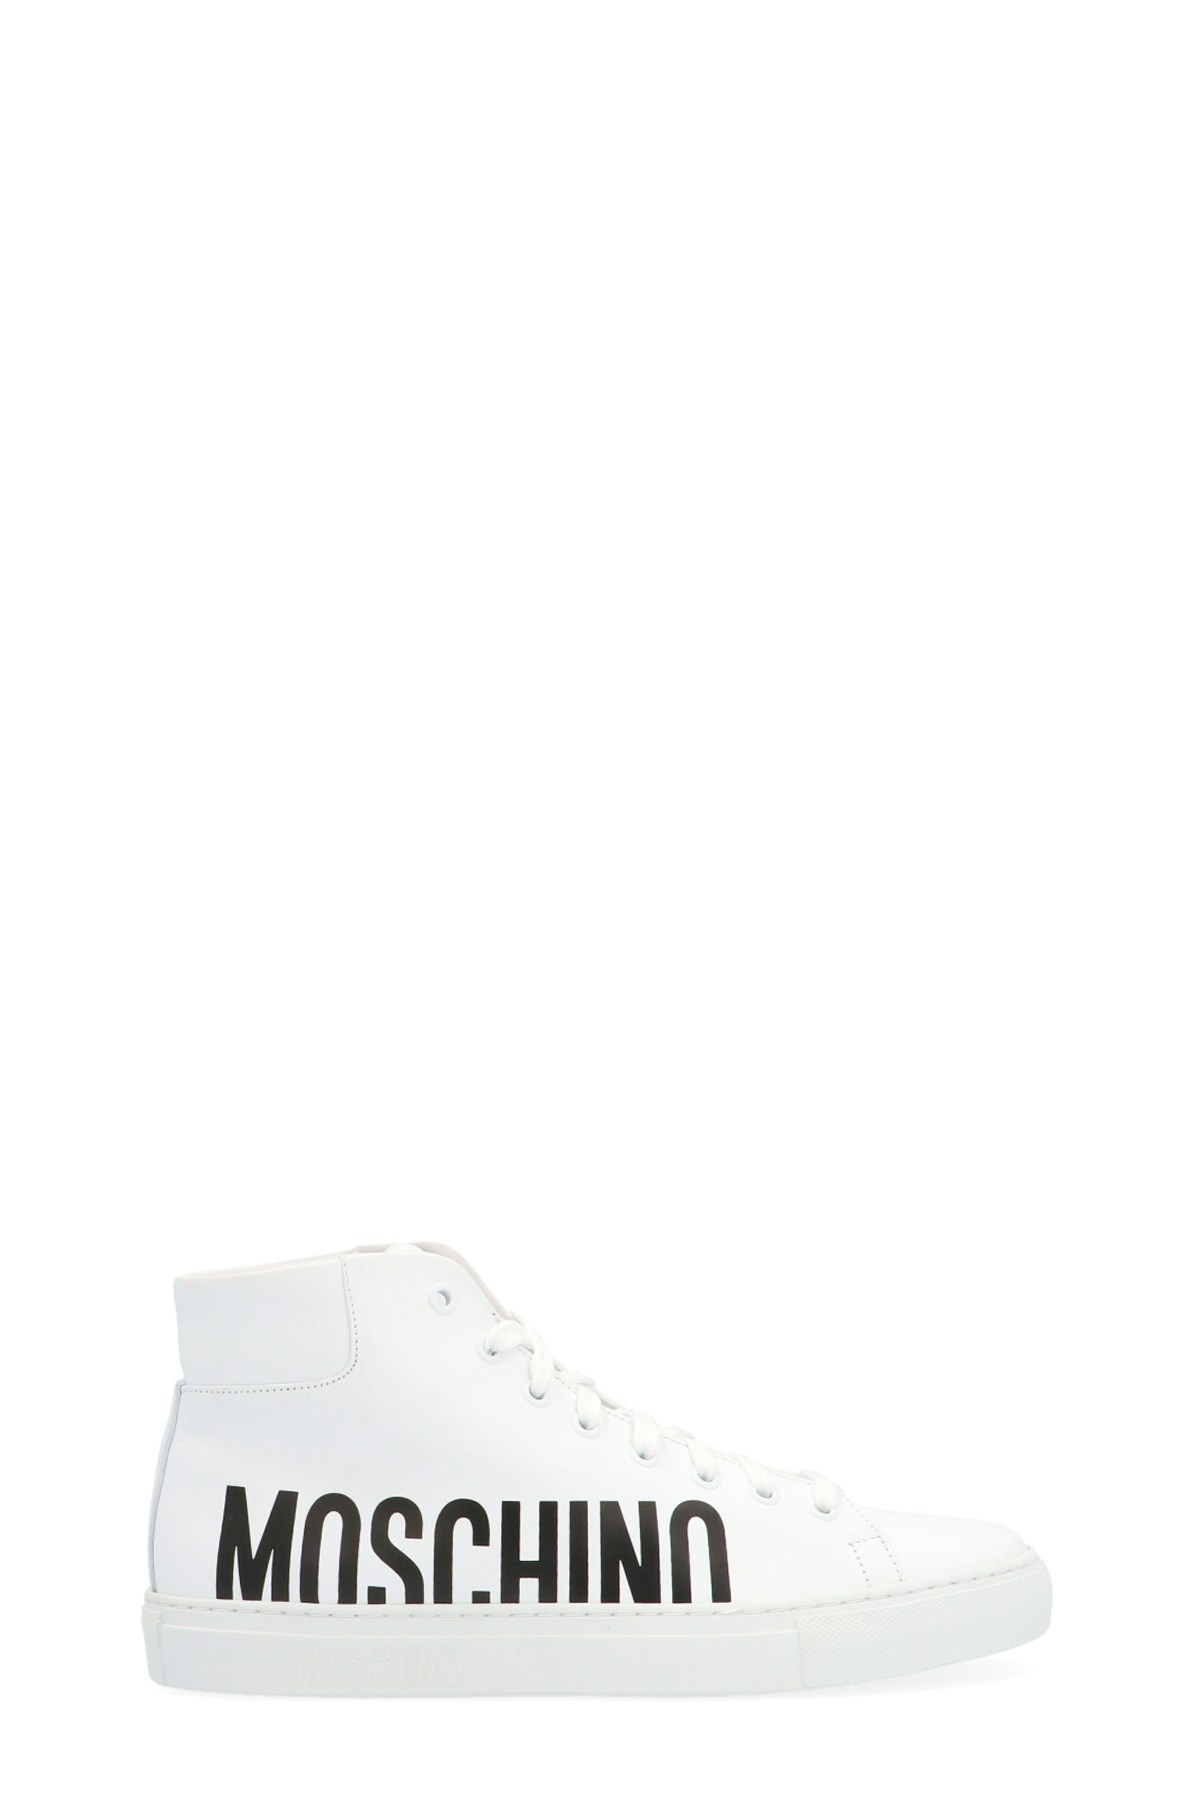 bfd5a017712bb moschino Logo sneakers available on julian-fashion.com - 99667